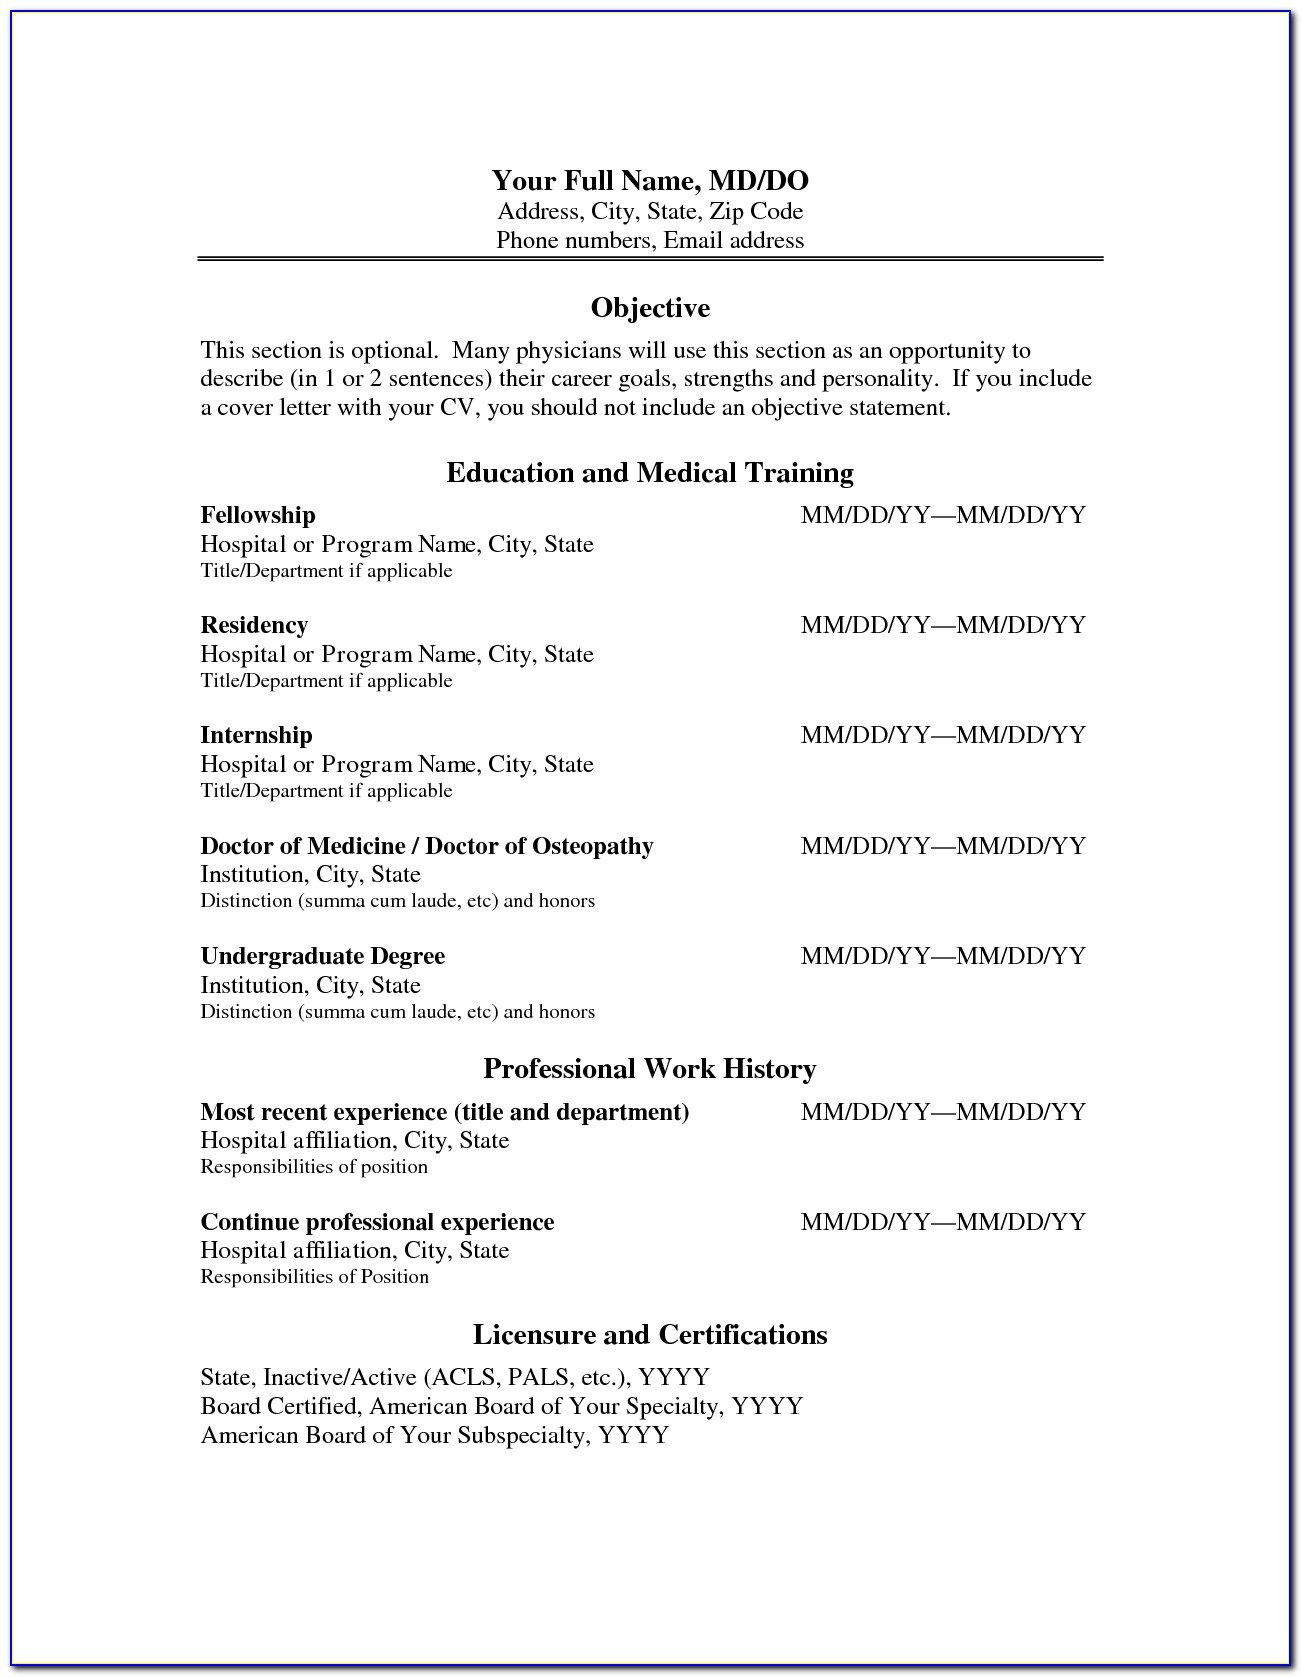 Physician Curriculum Vitae Template Word